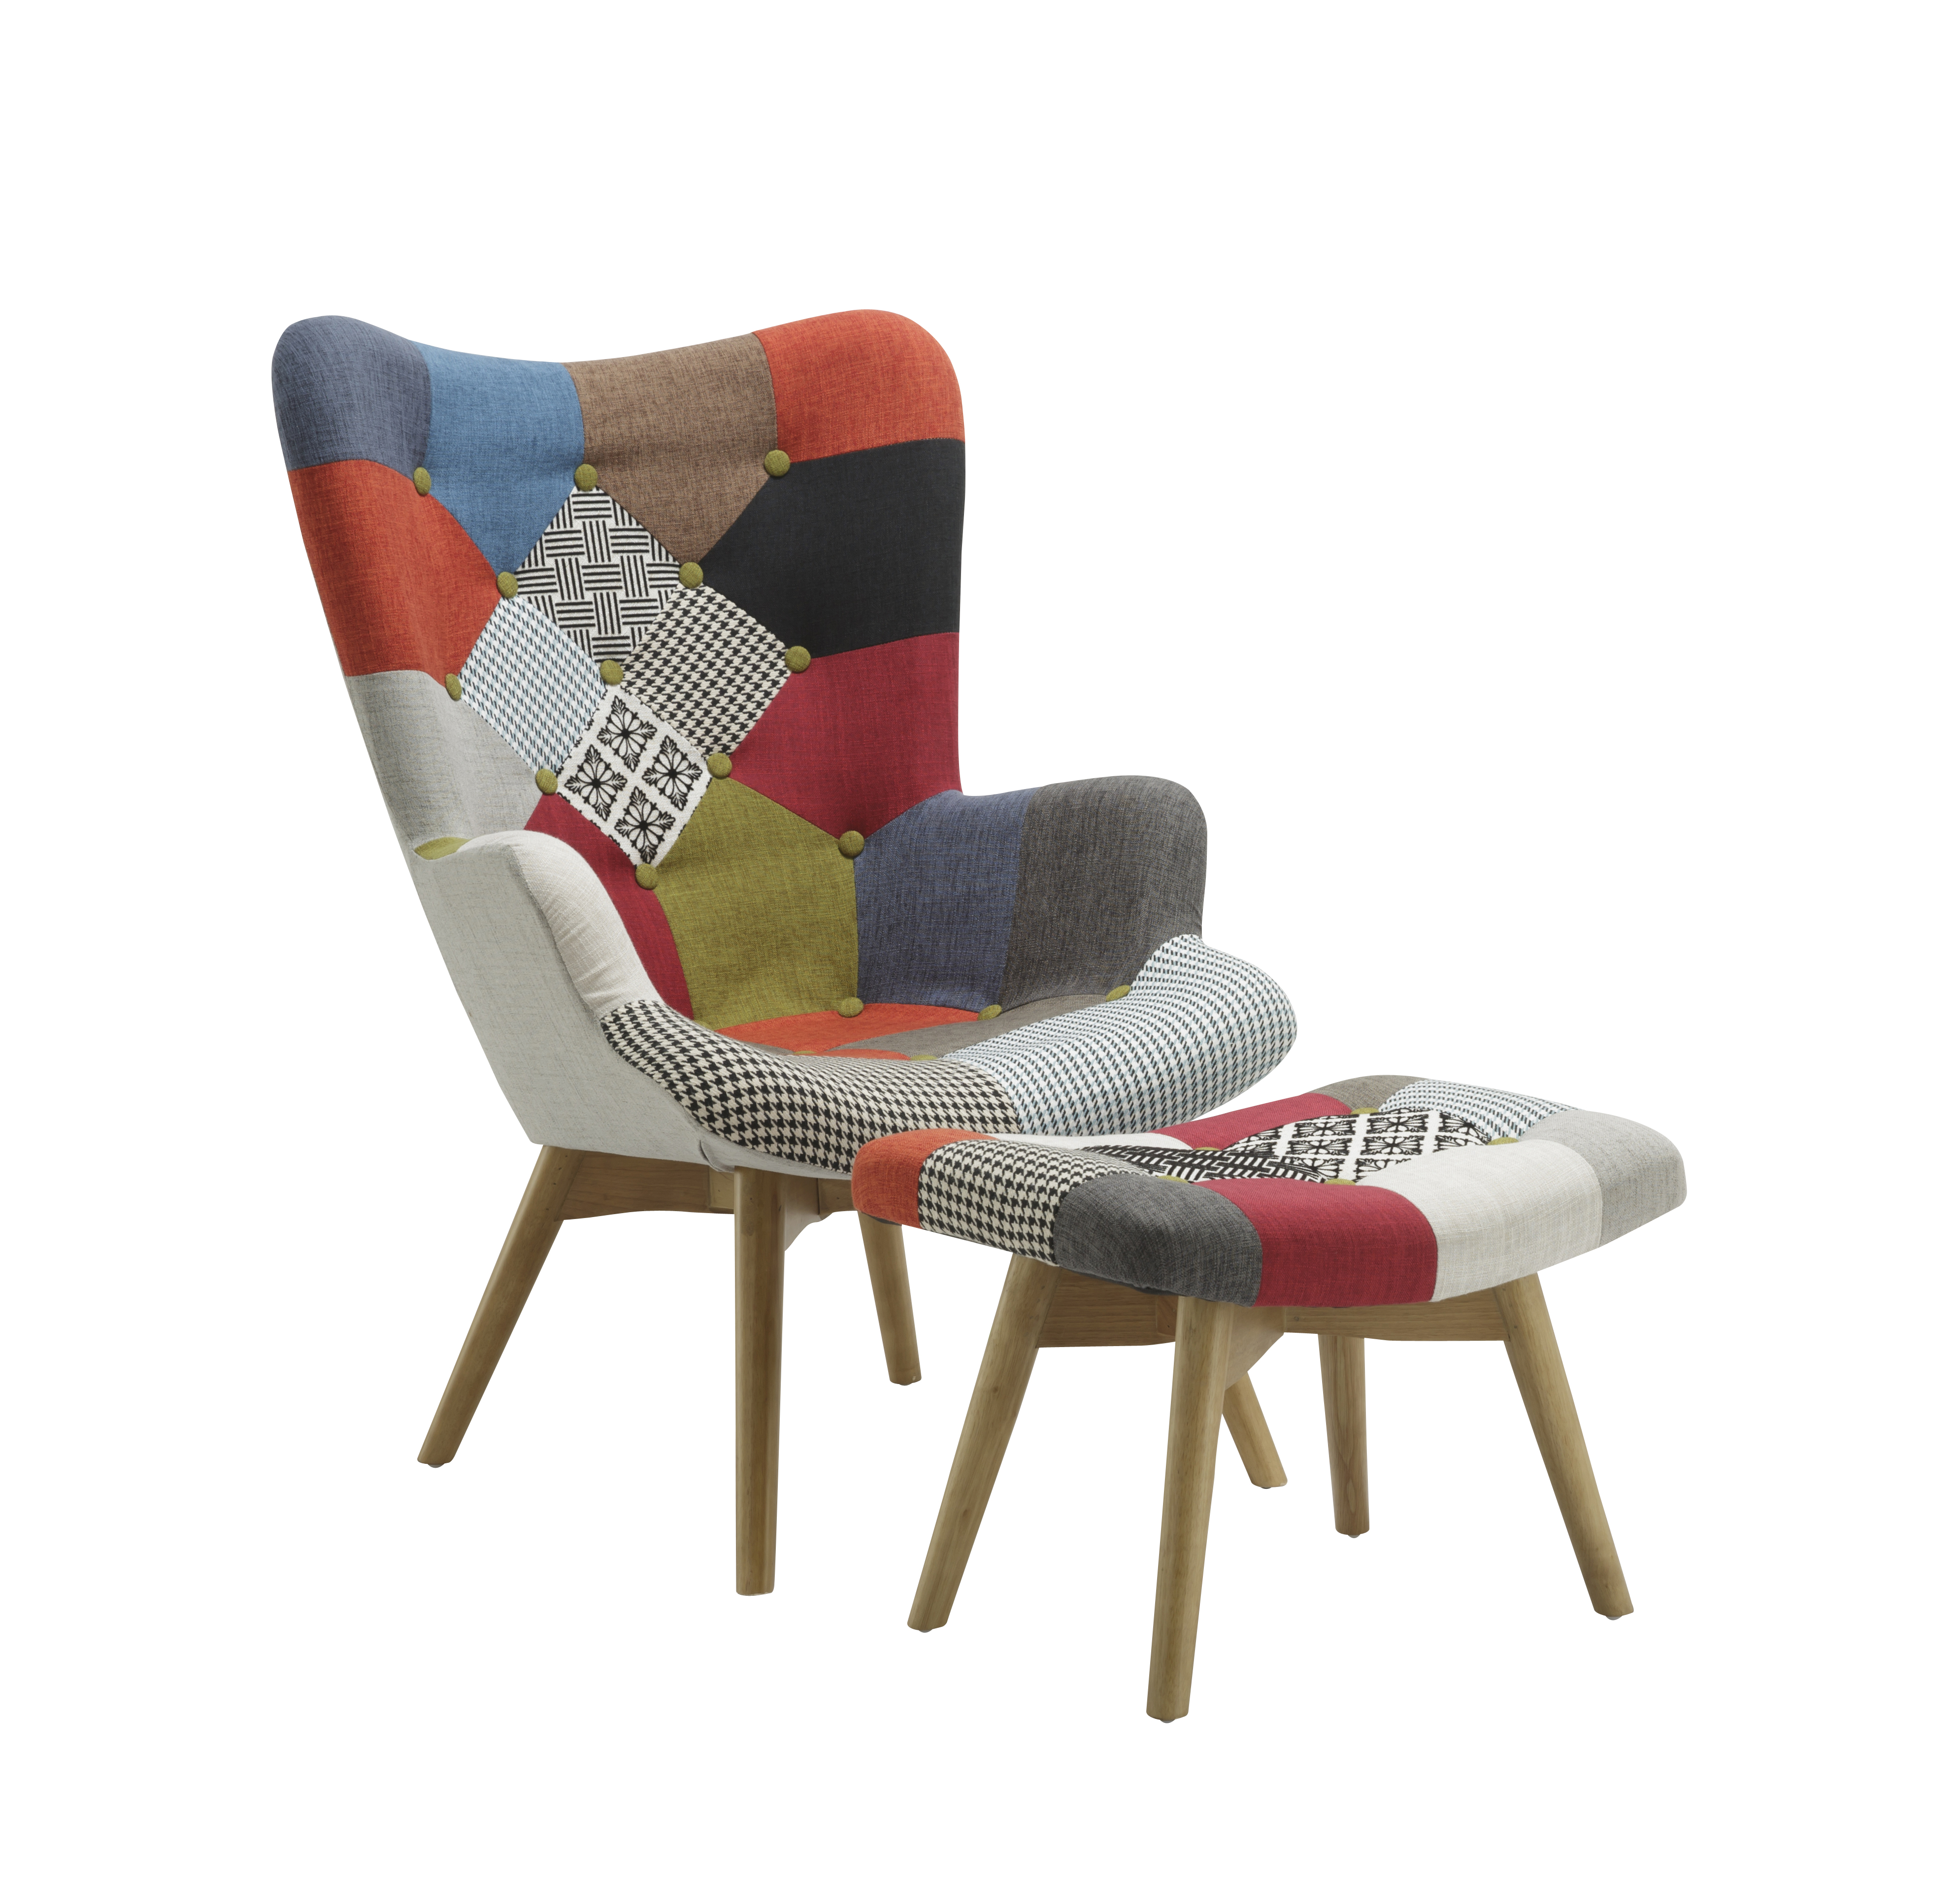 chair stool retro modern rocking nursery uk patchwork armchair and multicolour